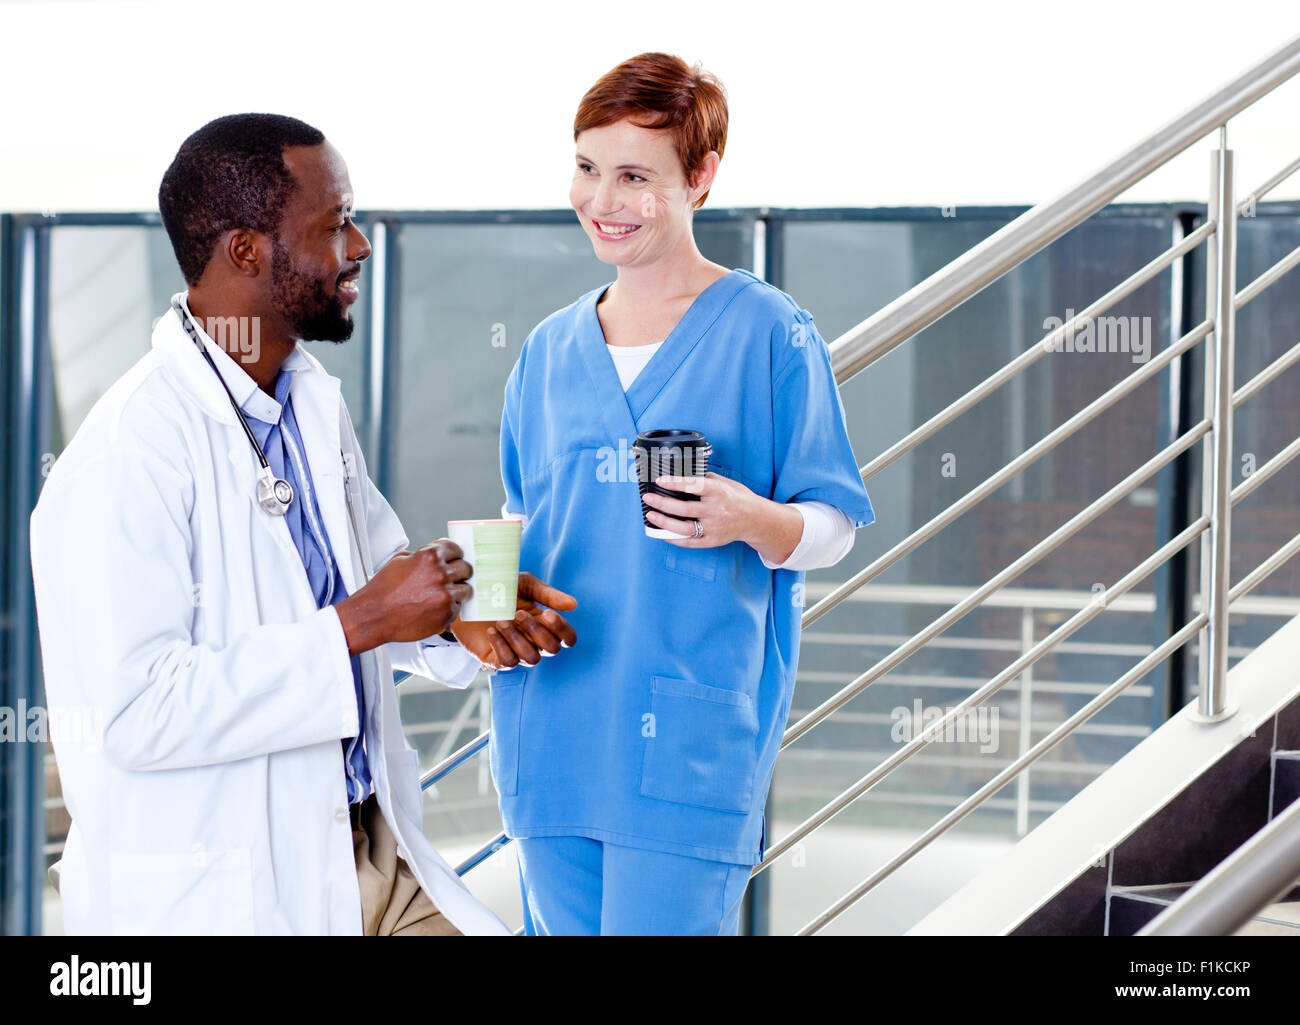 A doctor and a nurse talking - Stock Image